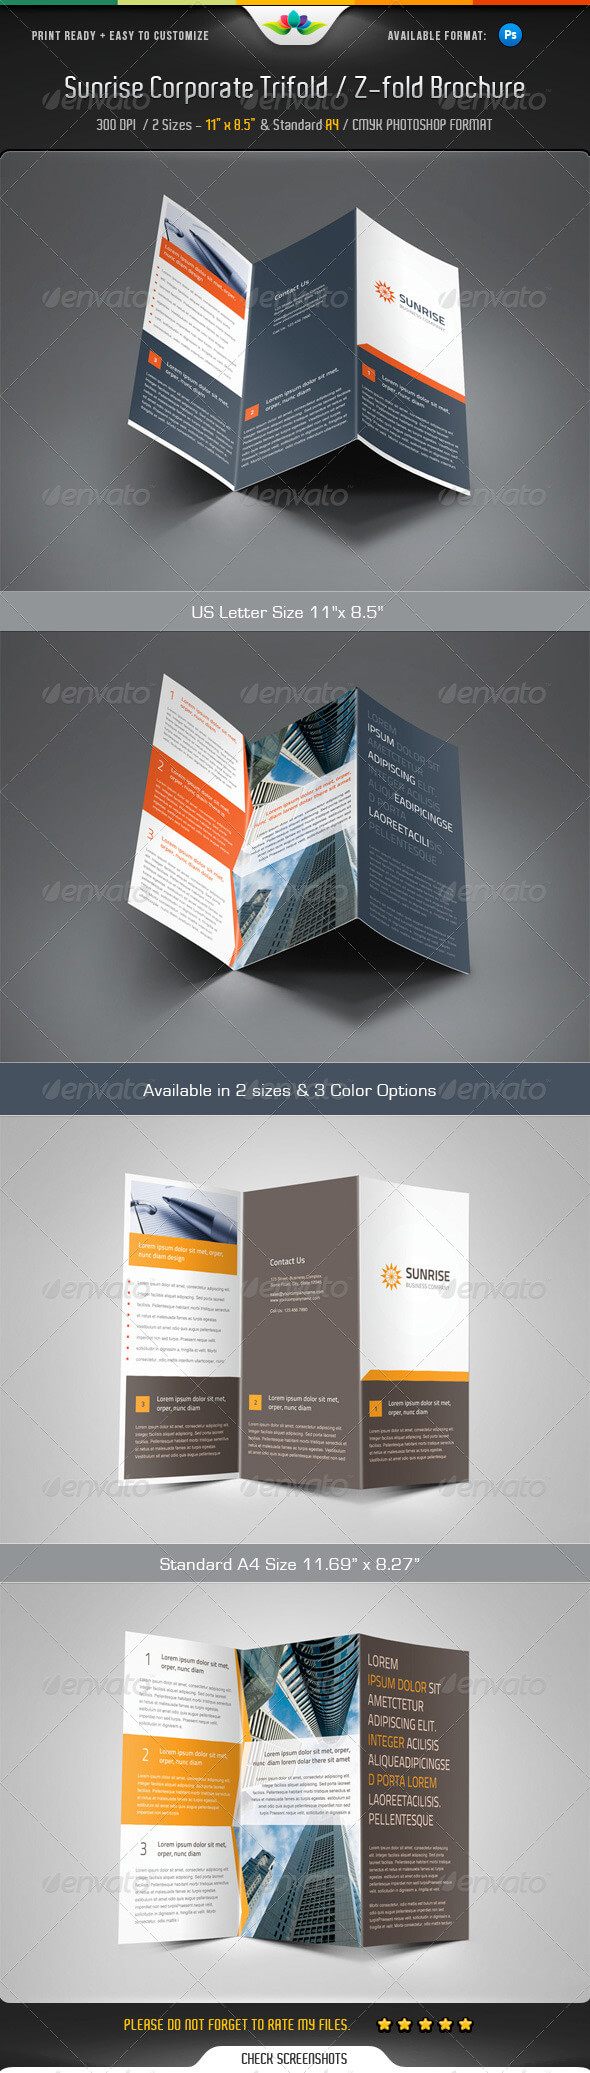 Z Fold Brochure Templates From Graphicriver With Regard To Z Fold Brochure Template Indesign